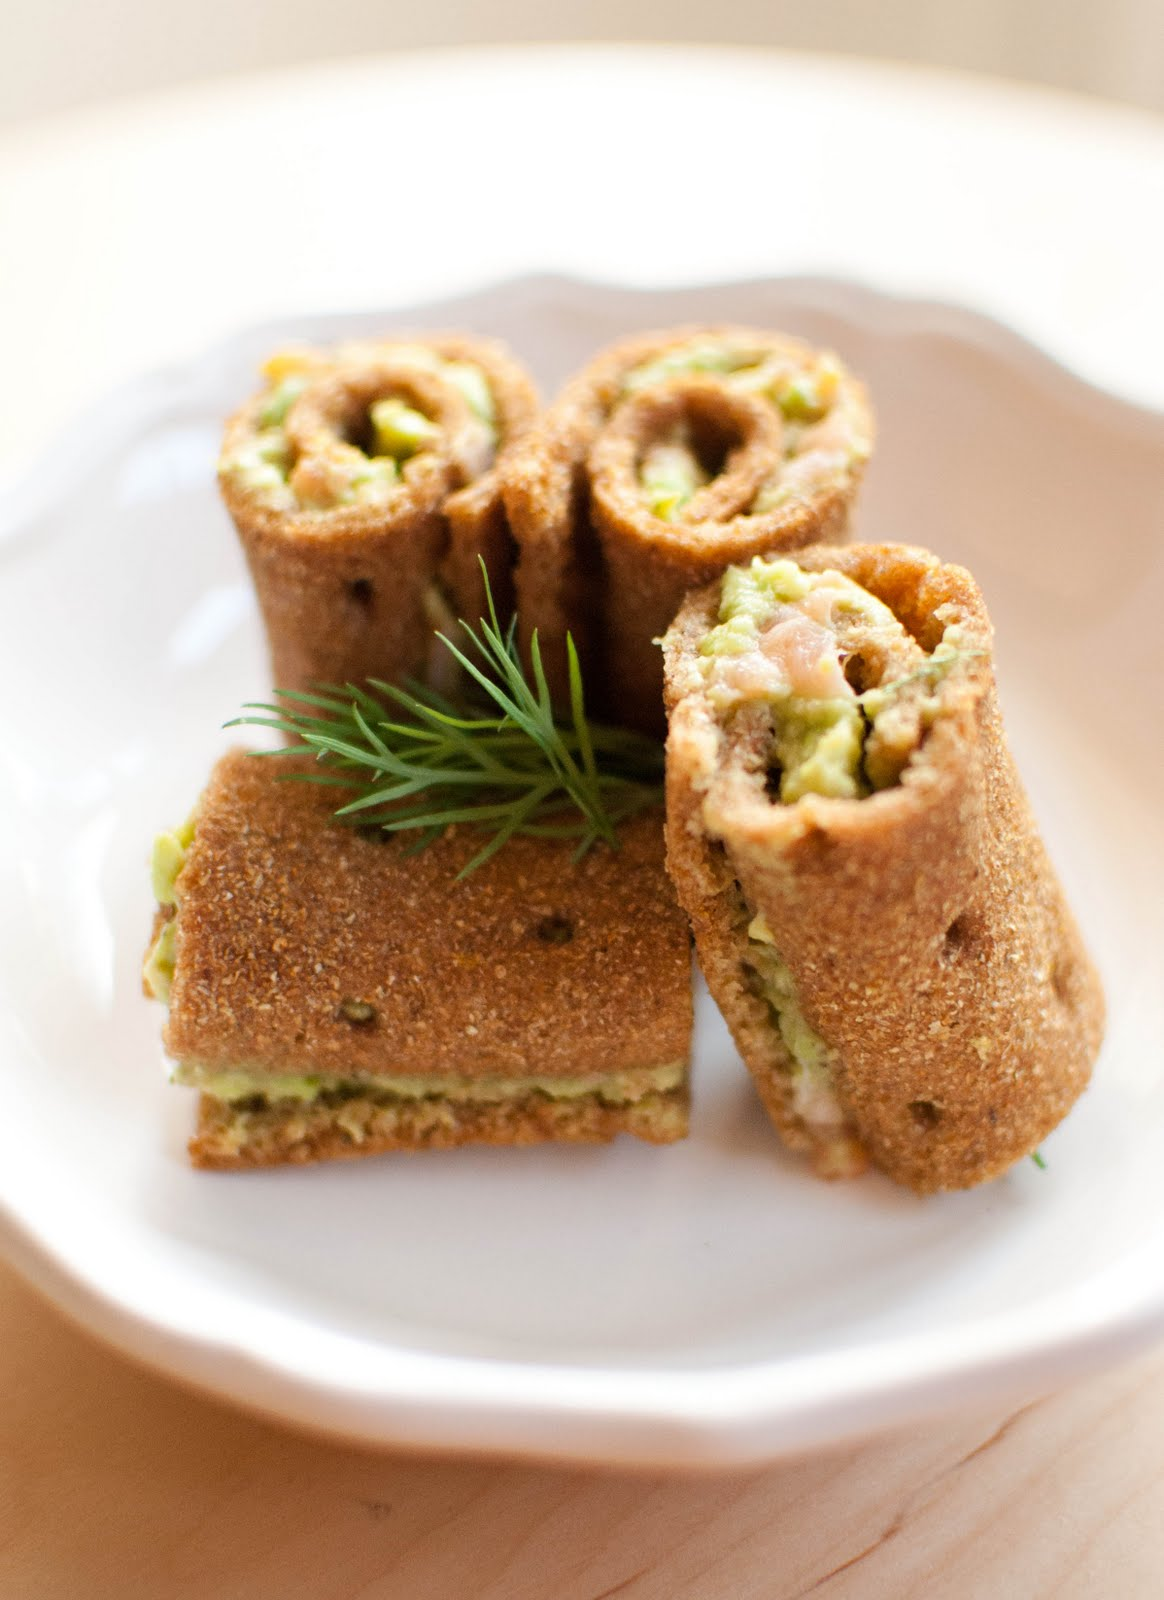 Scandi Home: Finn Crisp Rolls with Avocado and Smoked Salmon Filling